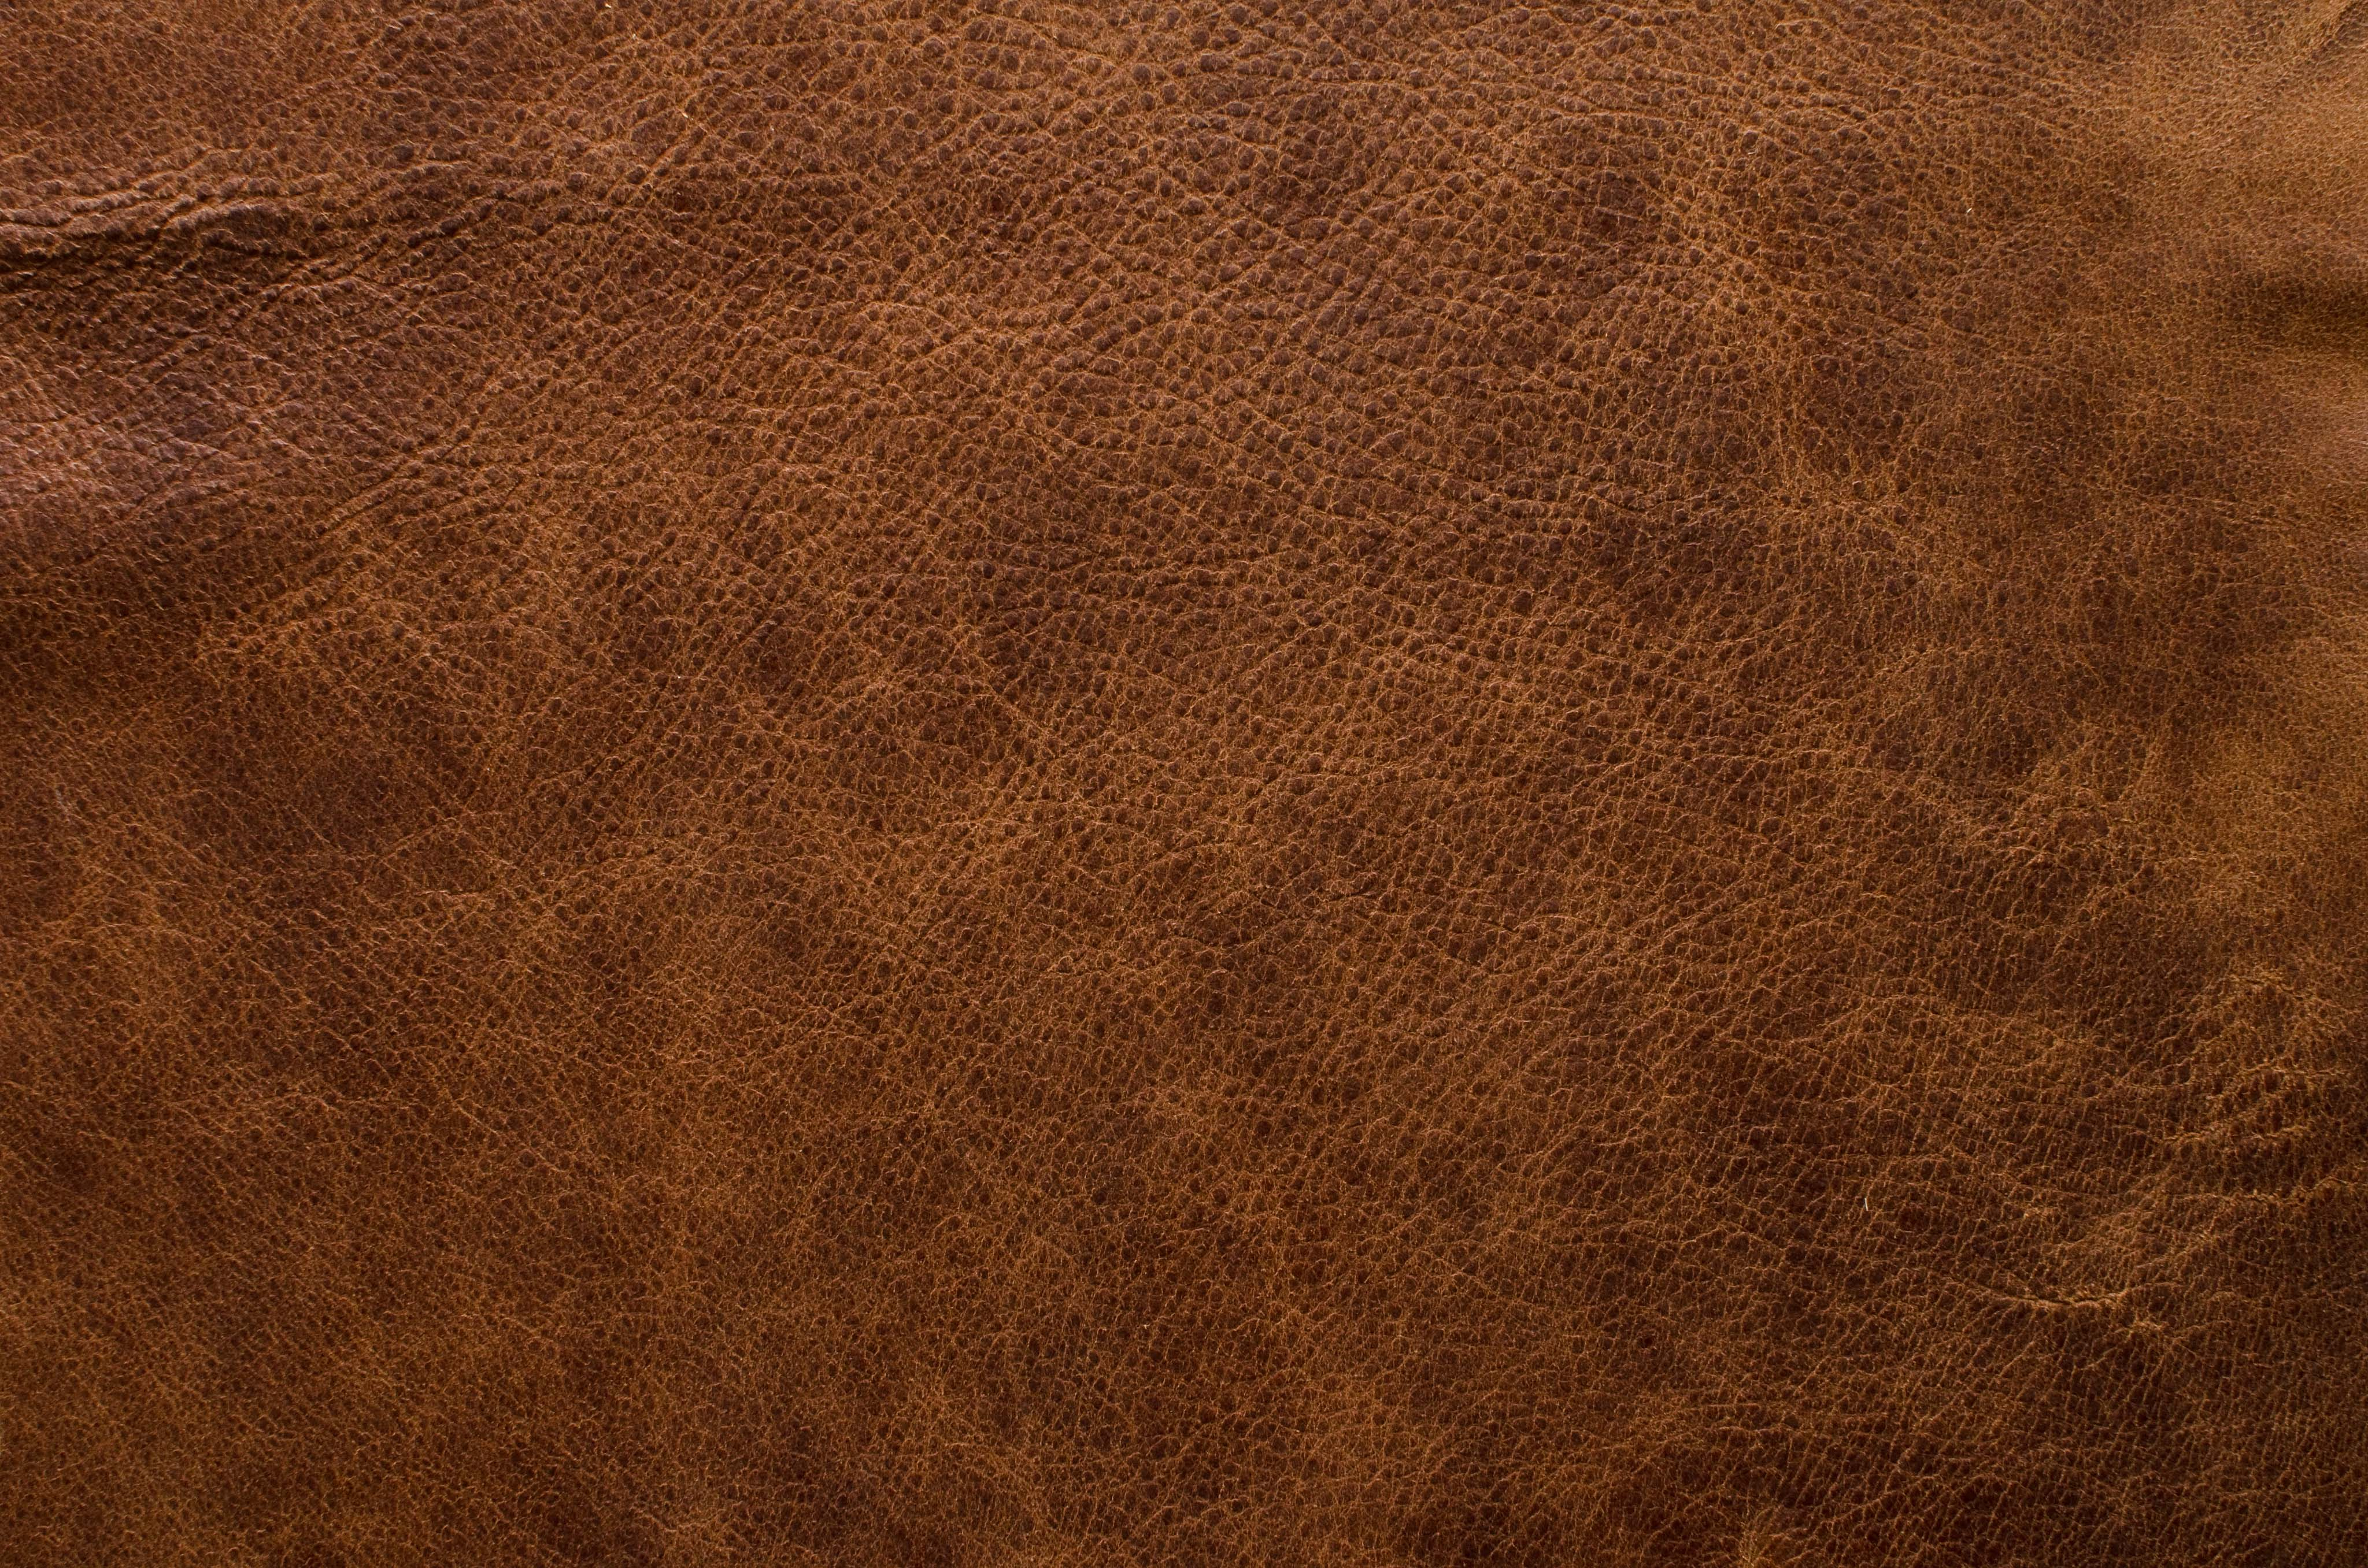 Leather Wallpapers Pattern Hq Leather Pictures 4k Wallpapers 2019